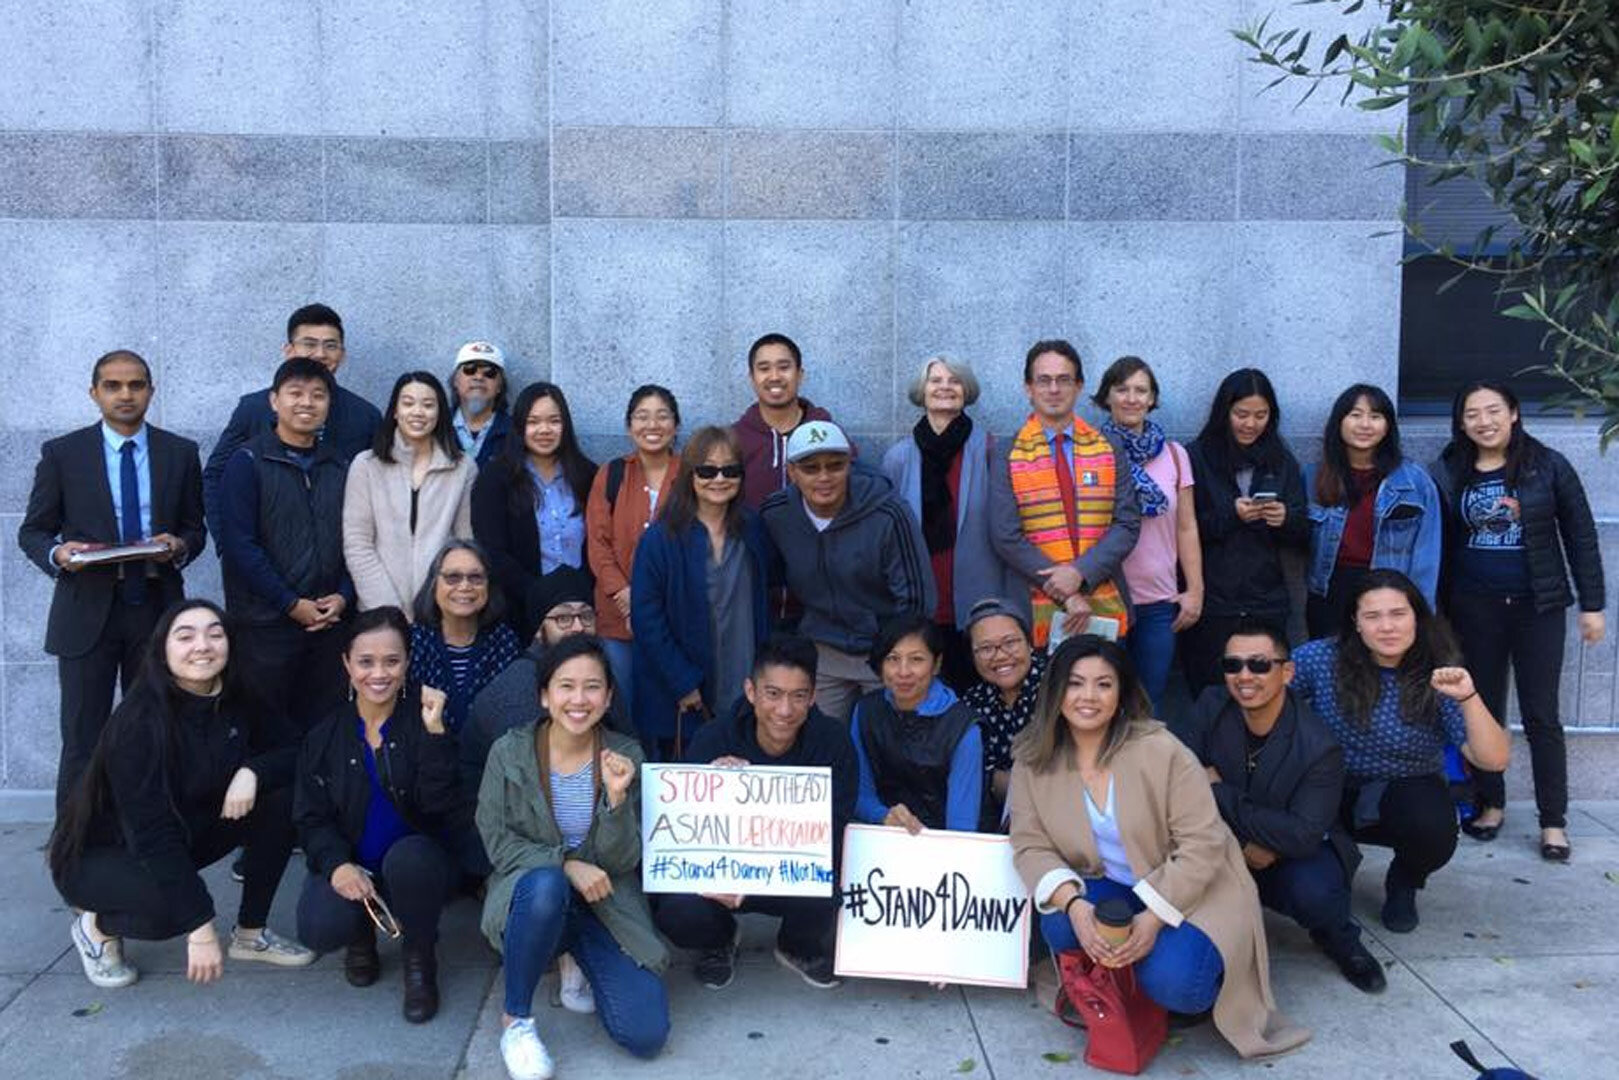 Bay Area community members supporting Somdeng Danny Thongsy #Stand4Danny at his ICE check-in in San Francisco.